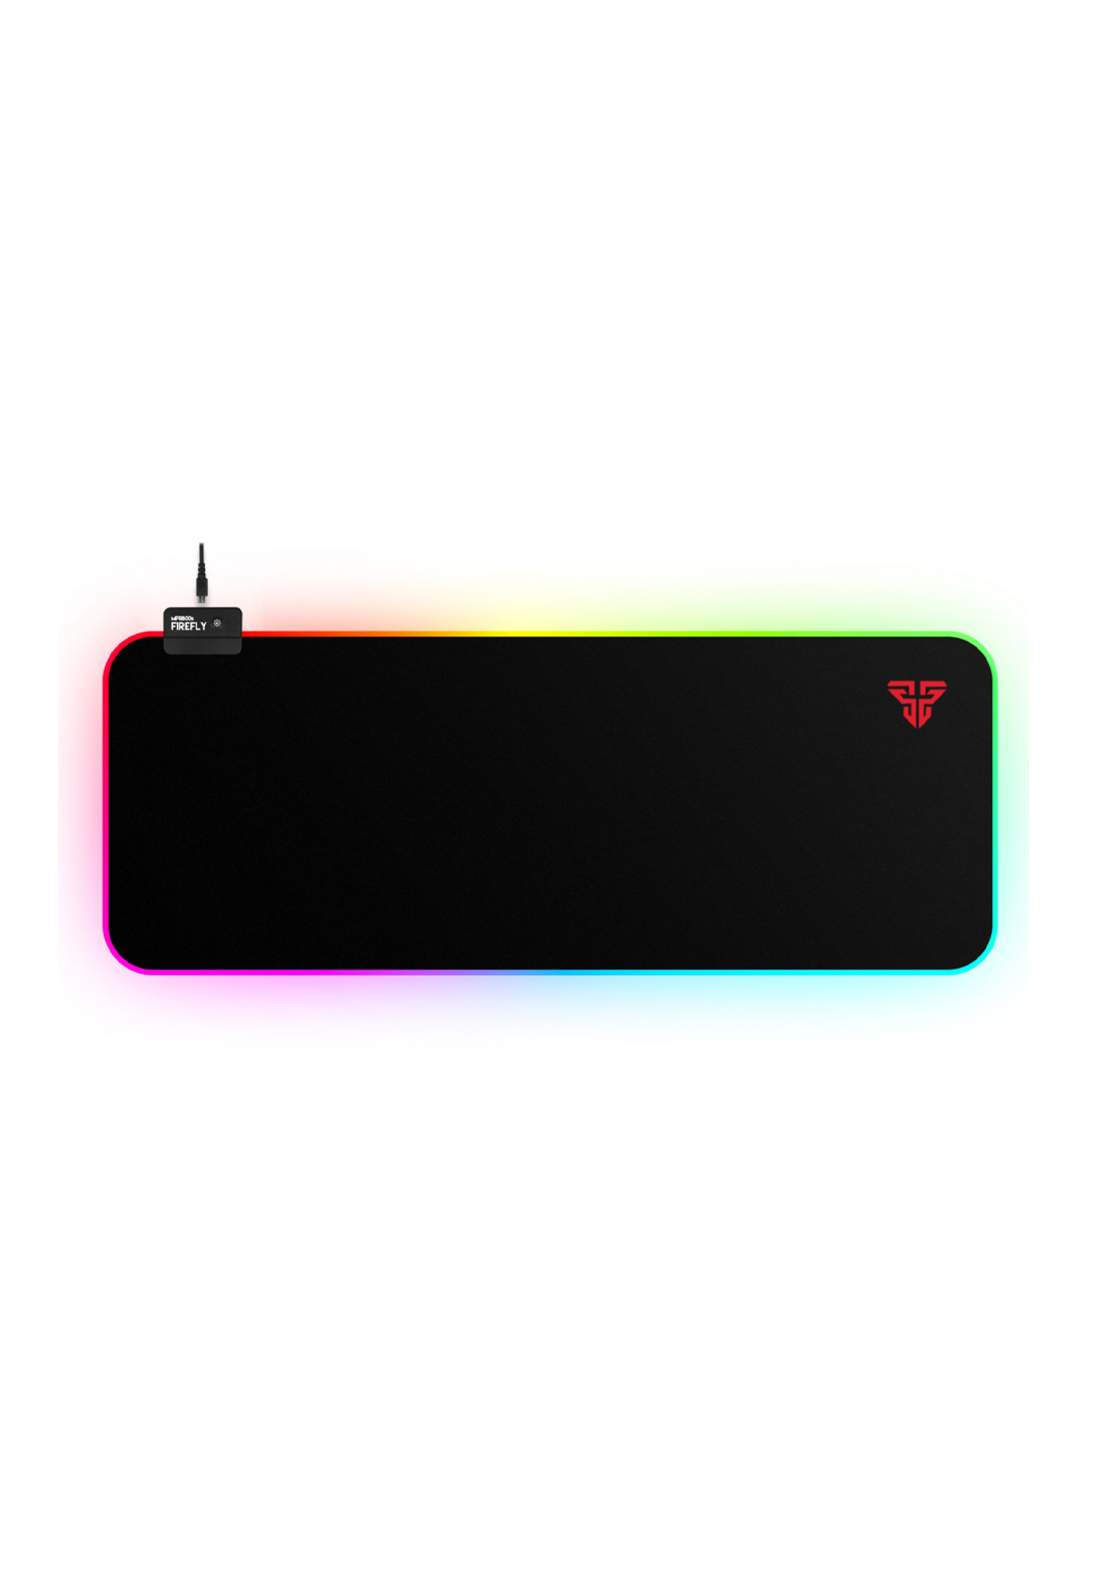 Fantech MPR800s FIREFLY RGB Gaming Mouse pad